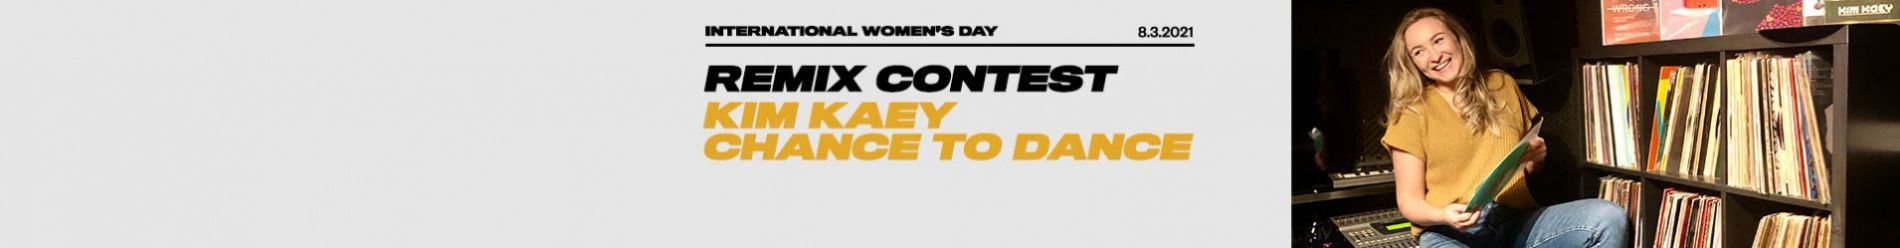 """CELEBRATING INTERNATIONAL WOMEN'S DAY: REMIX """"KIM KAEY - CHANCE TO DANCE"""" AND WIN A SPECIAL PRIZE PACKAGE!"""